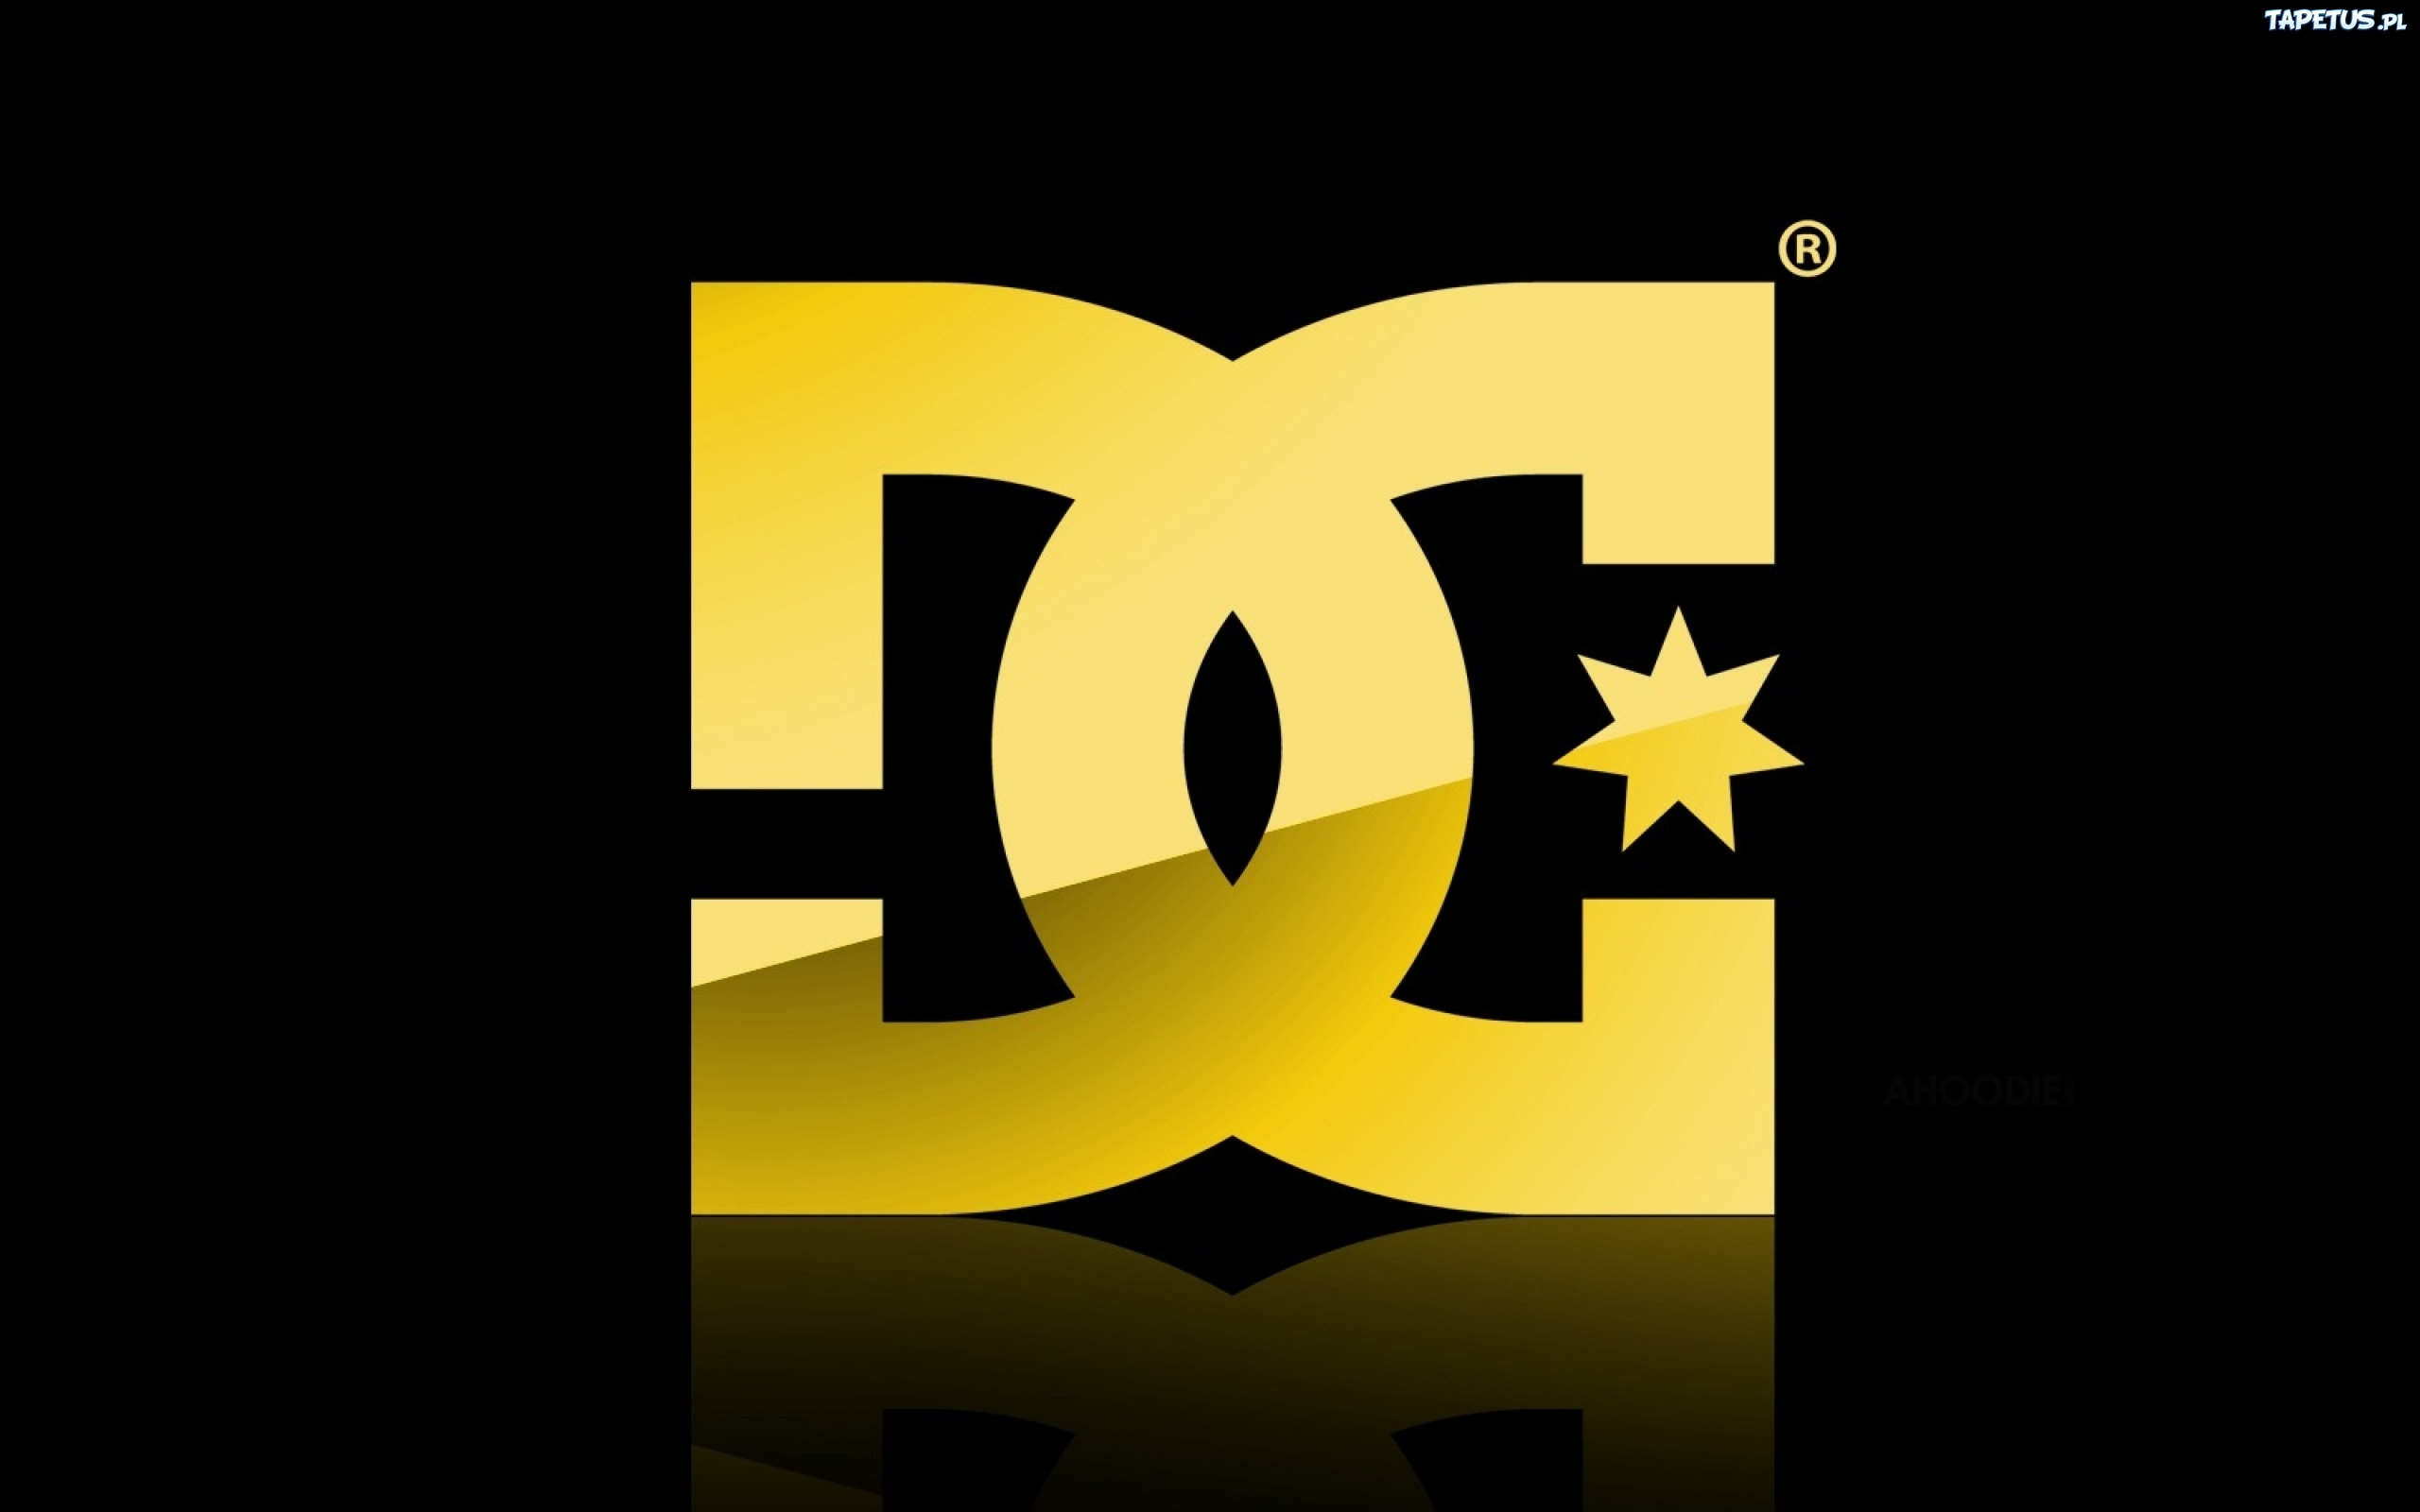 Dc shoes logo online shoes stores fashion shoes you ever wanted